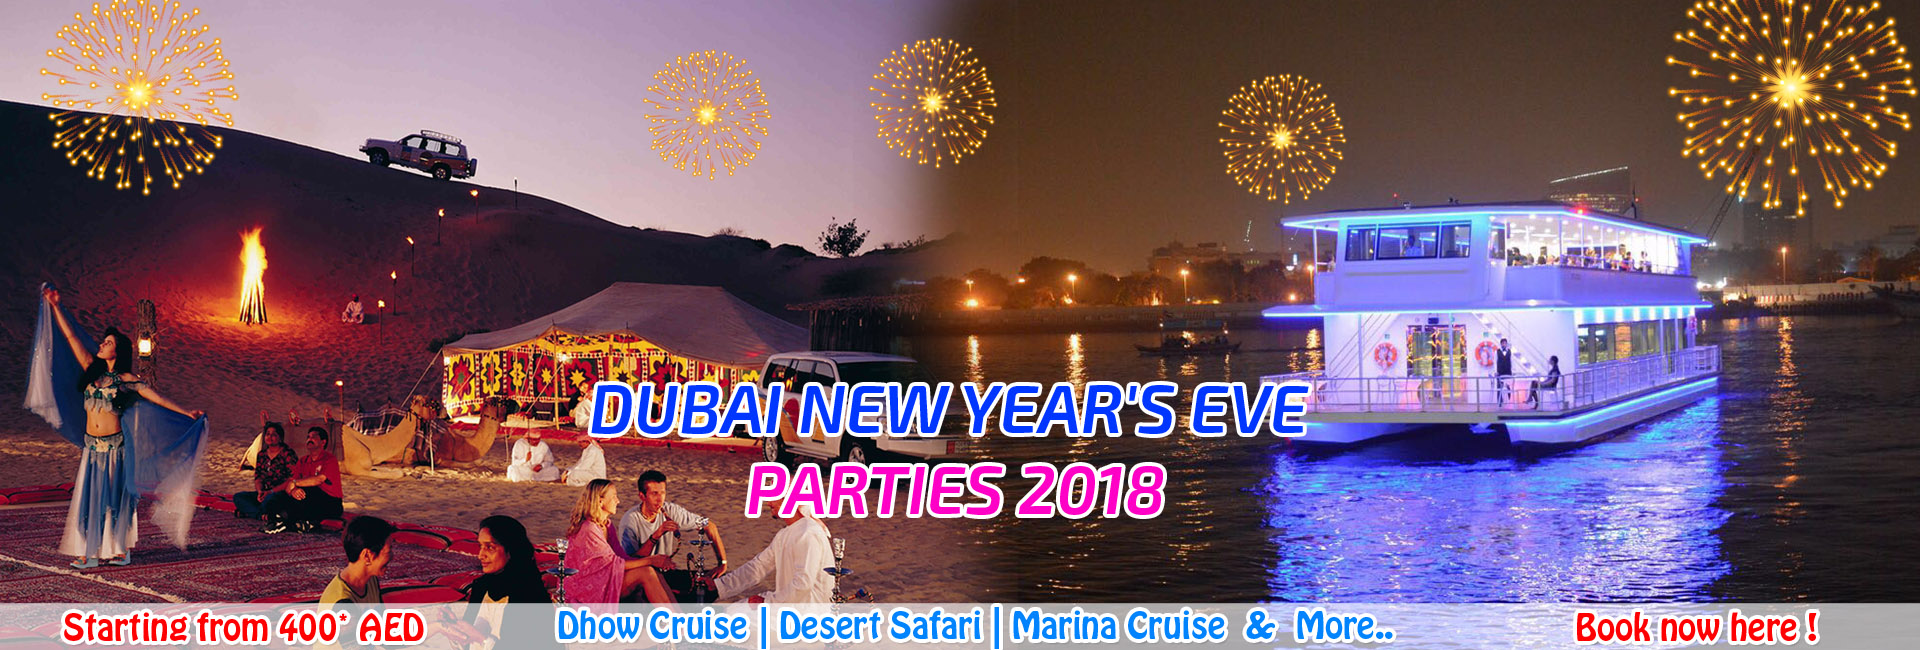 Dubai New Year 2018 Offers